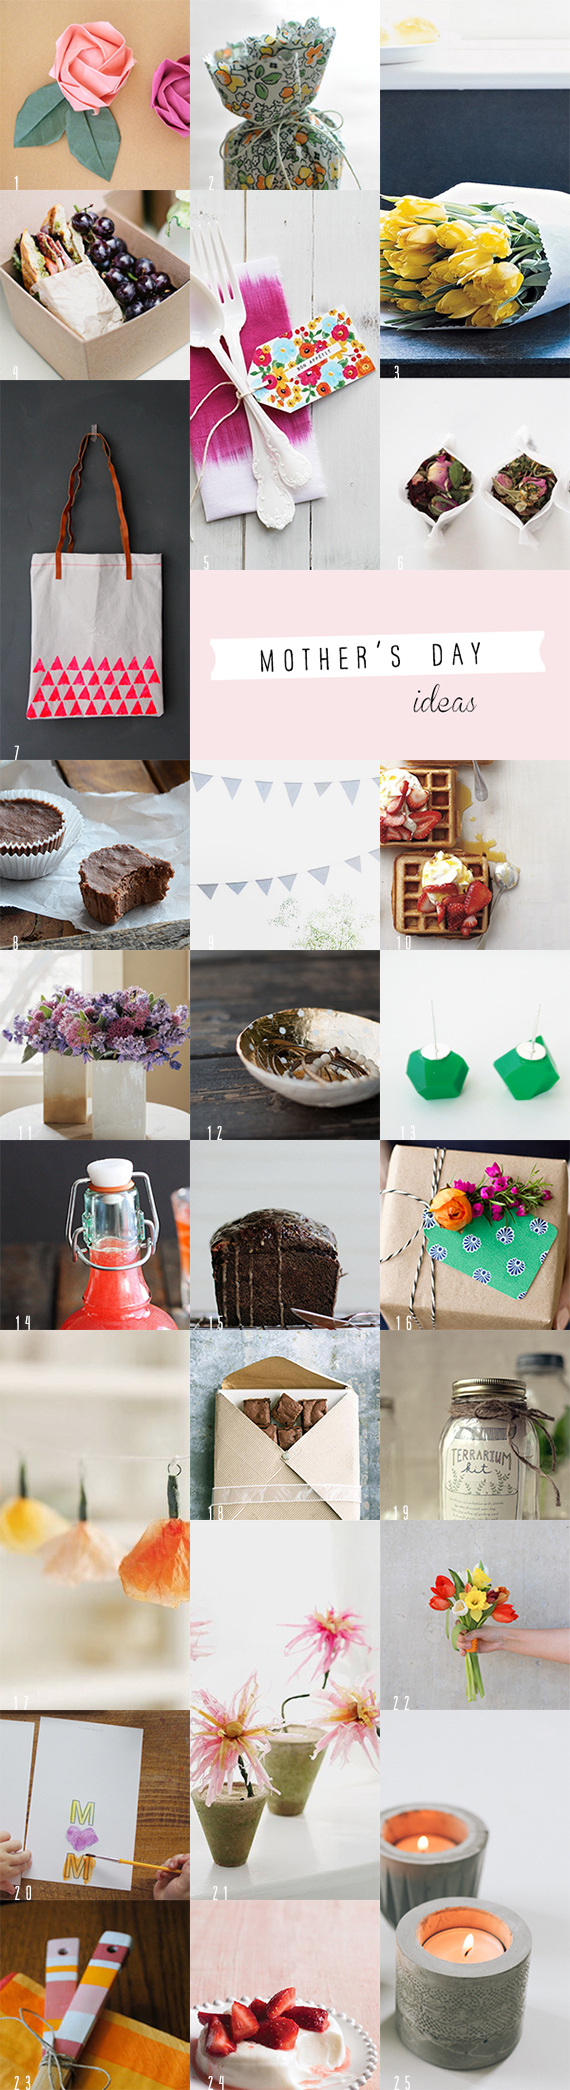 Mothers-Day-Ideas